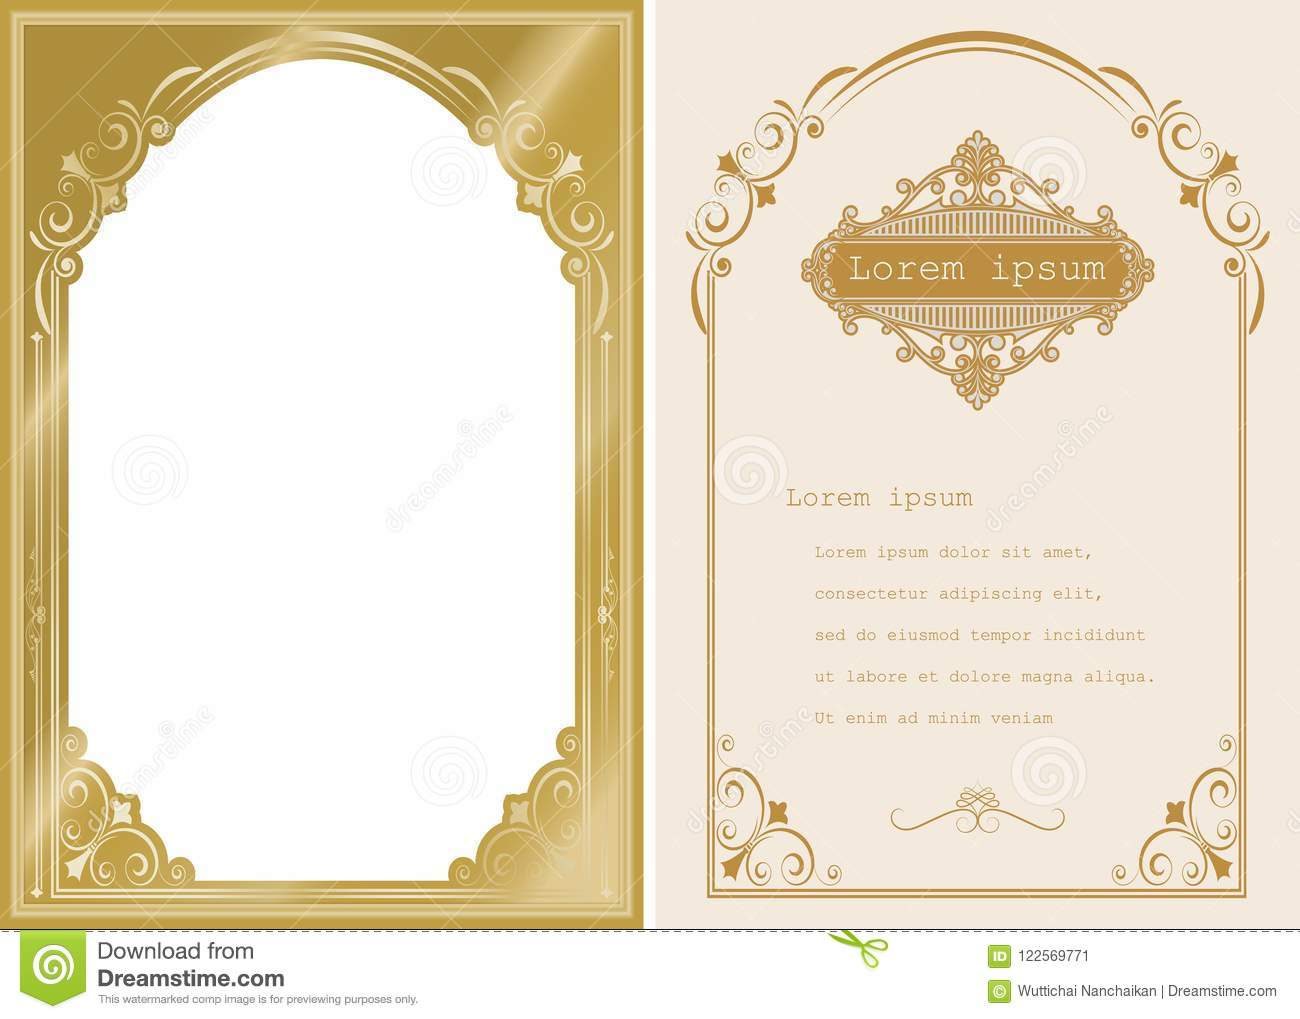 73873d416c86 Premium Invitation Or Wedding Card Stock Vector - Illustration of ...